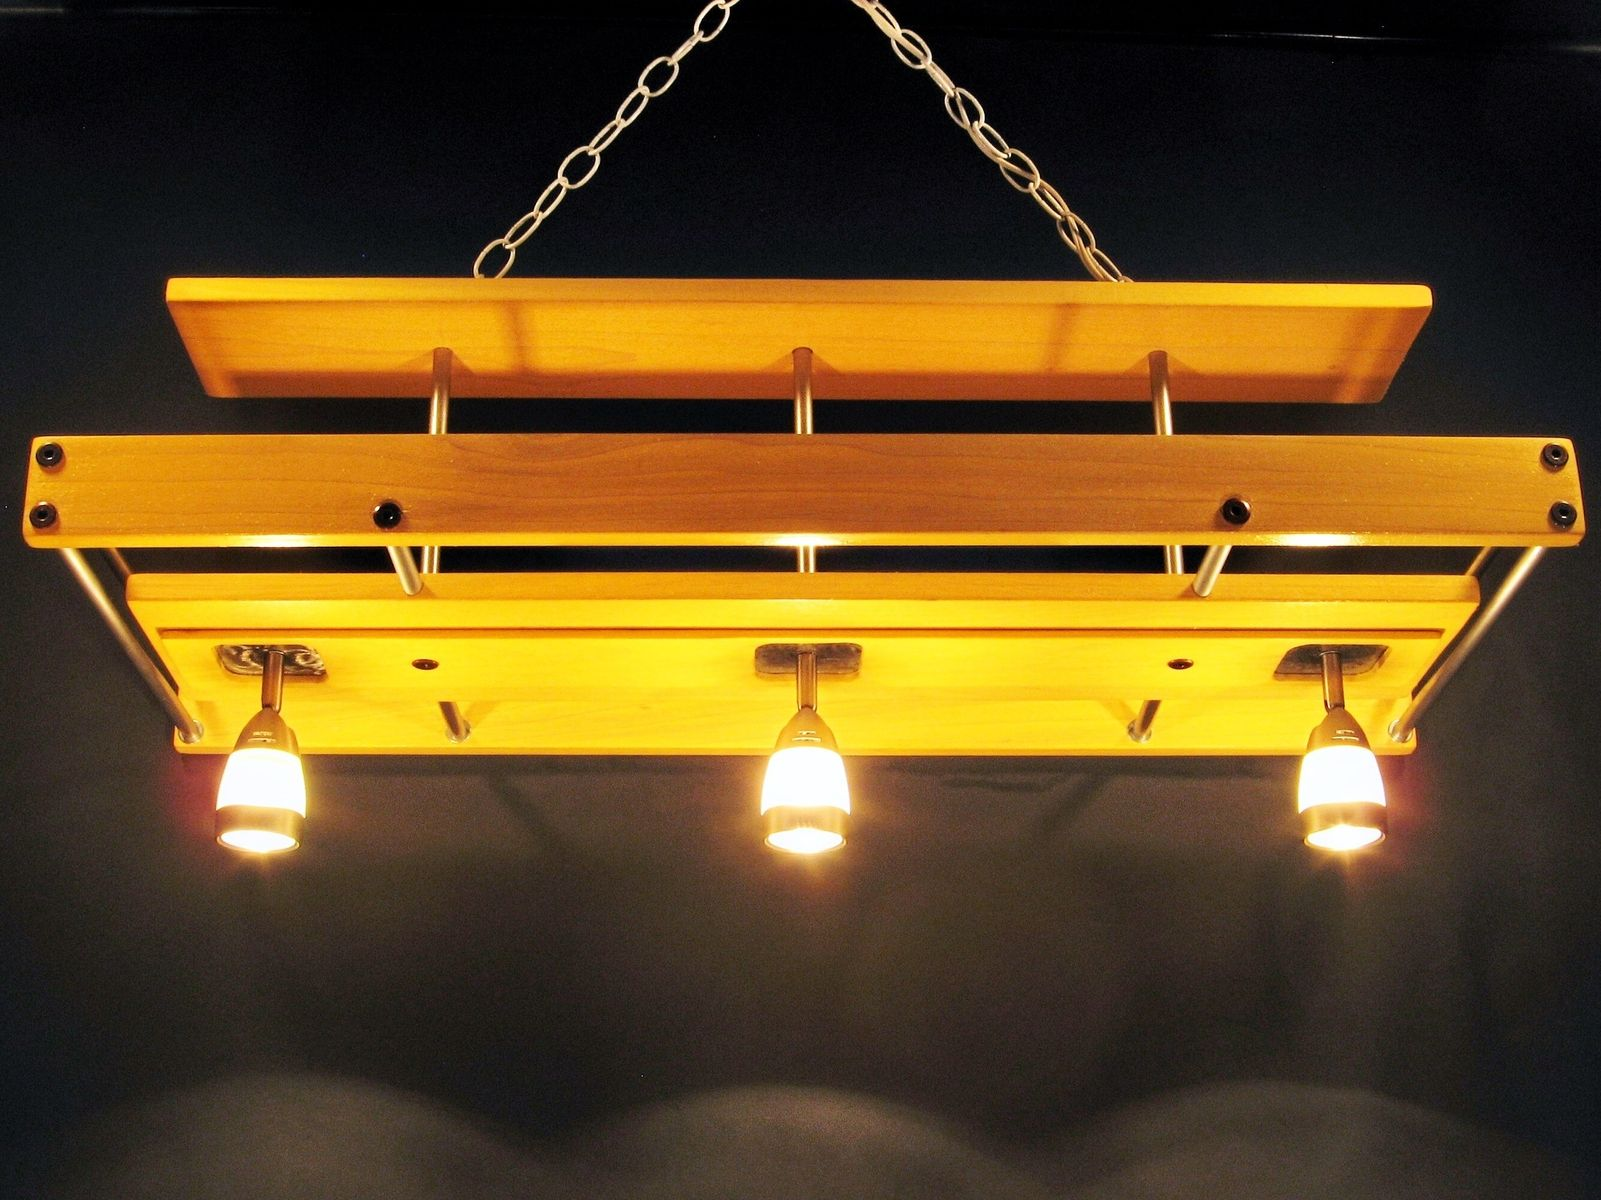 eclectic lighting. Custom Made Industrial Contemporary Eclectic Light Lighting T